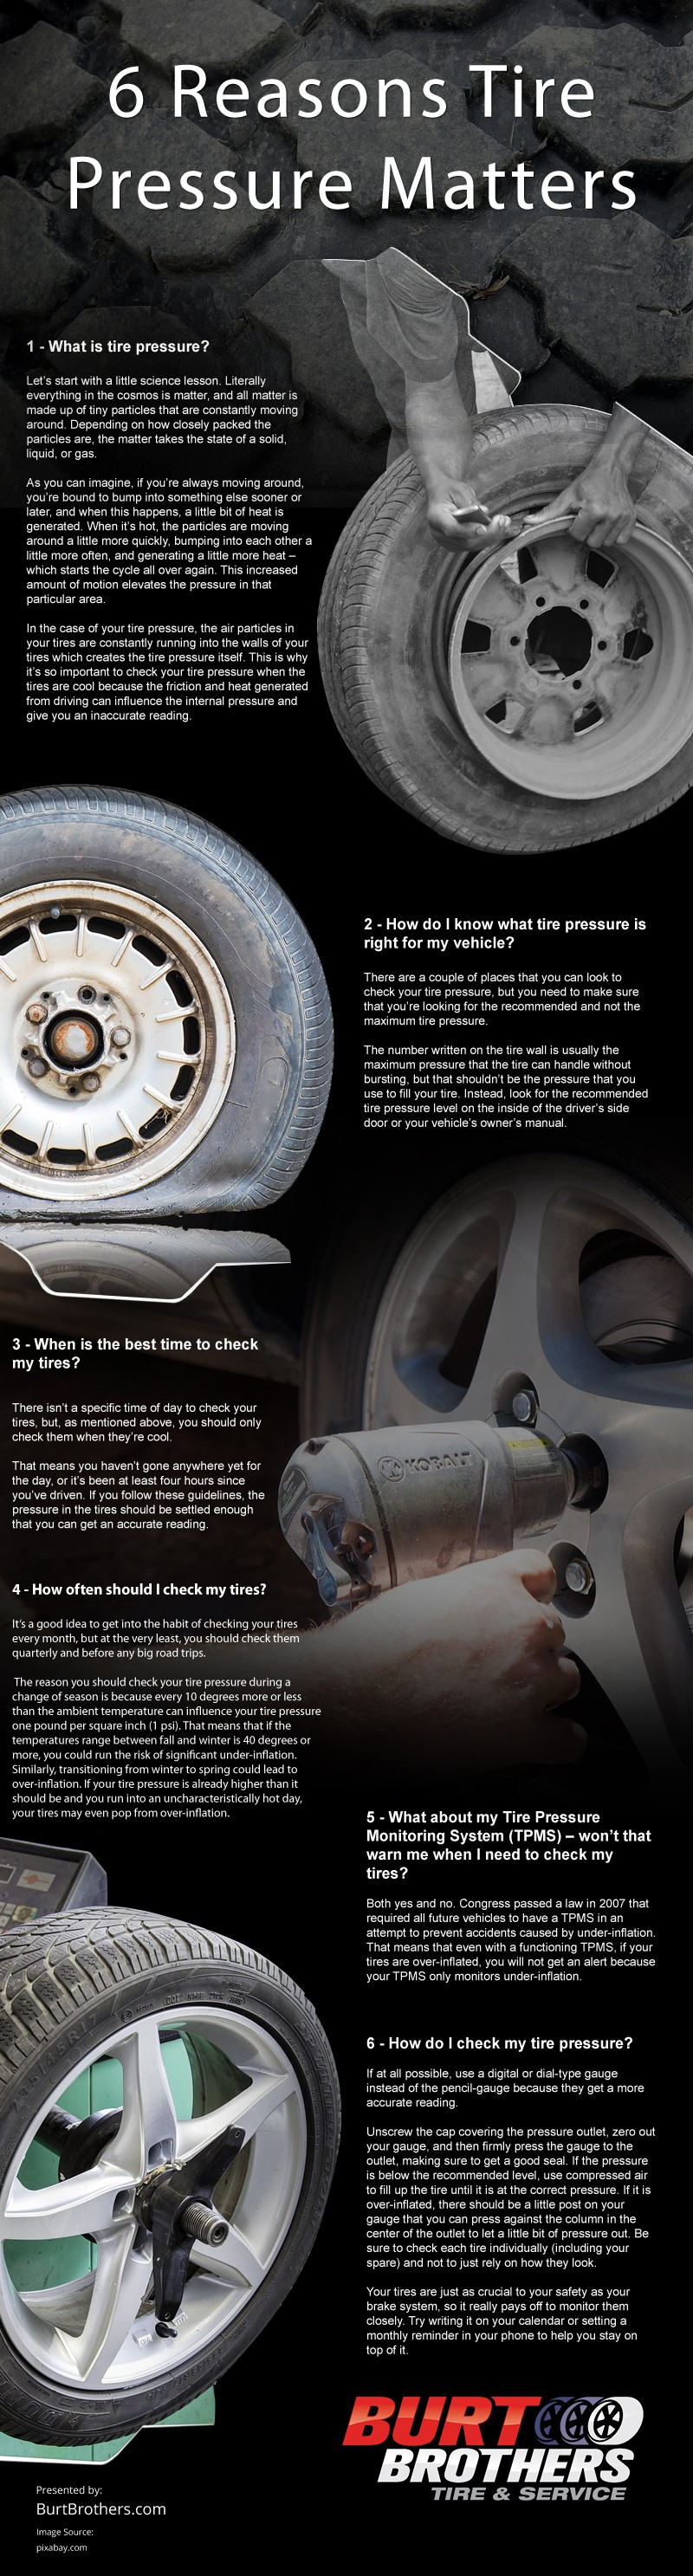 6 Reasons Tire Pressure Matters [infographic]